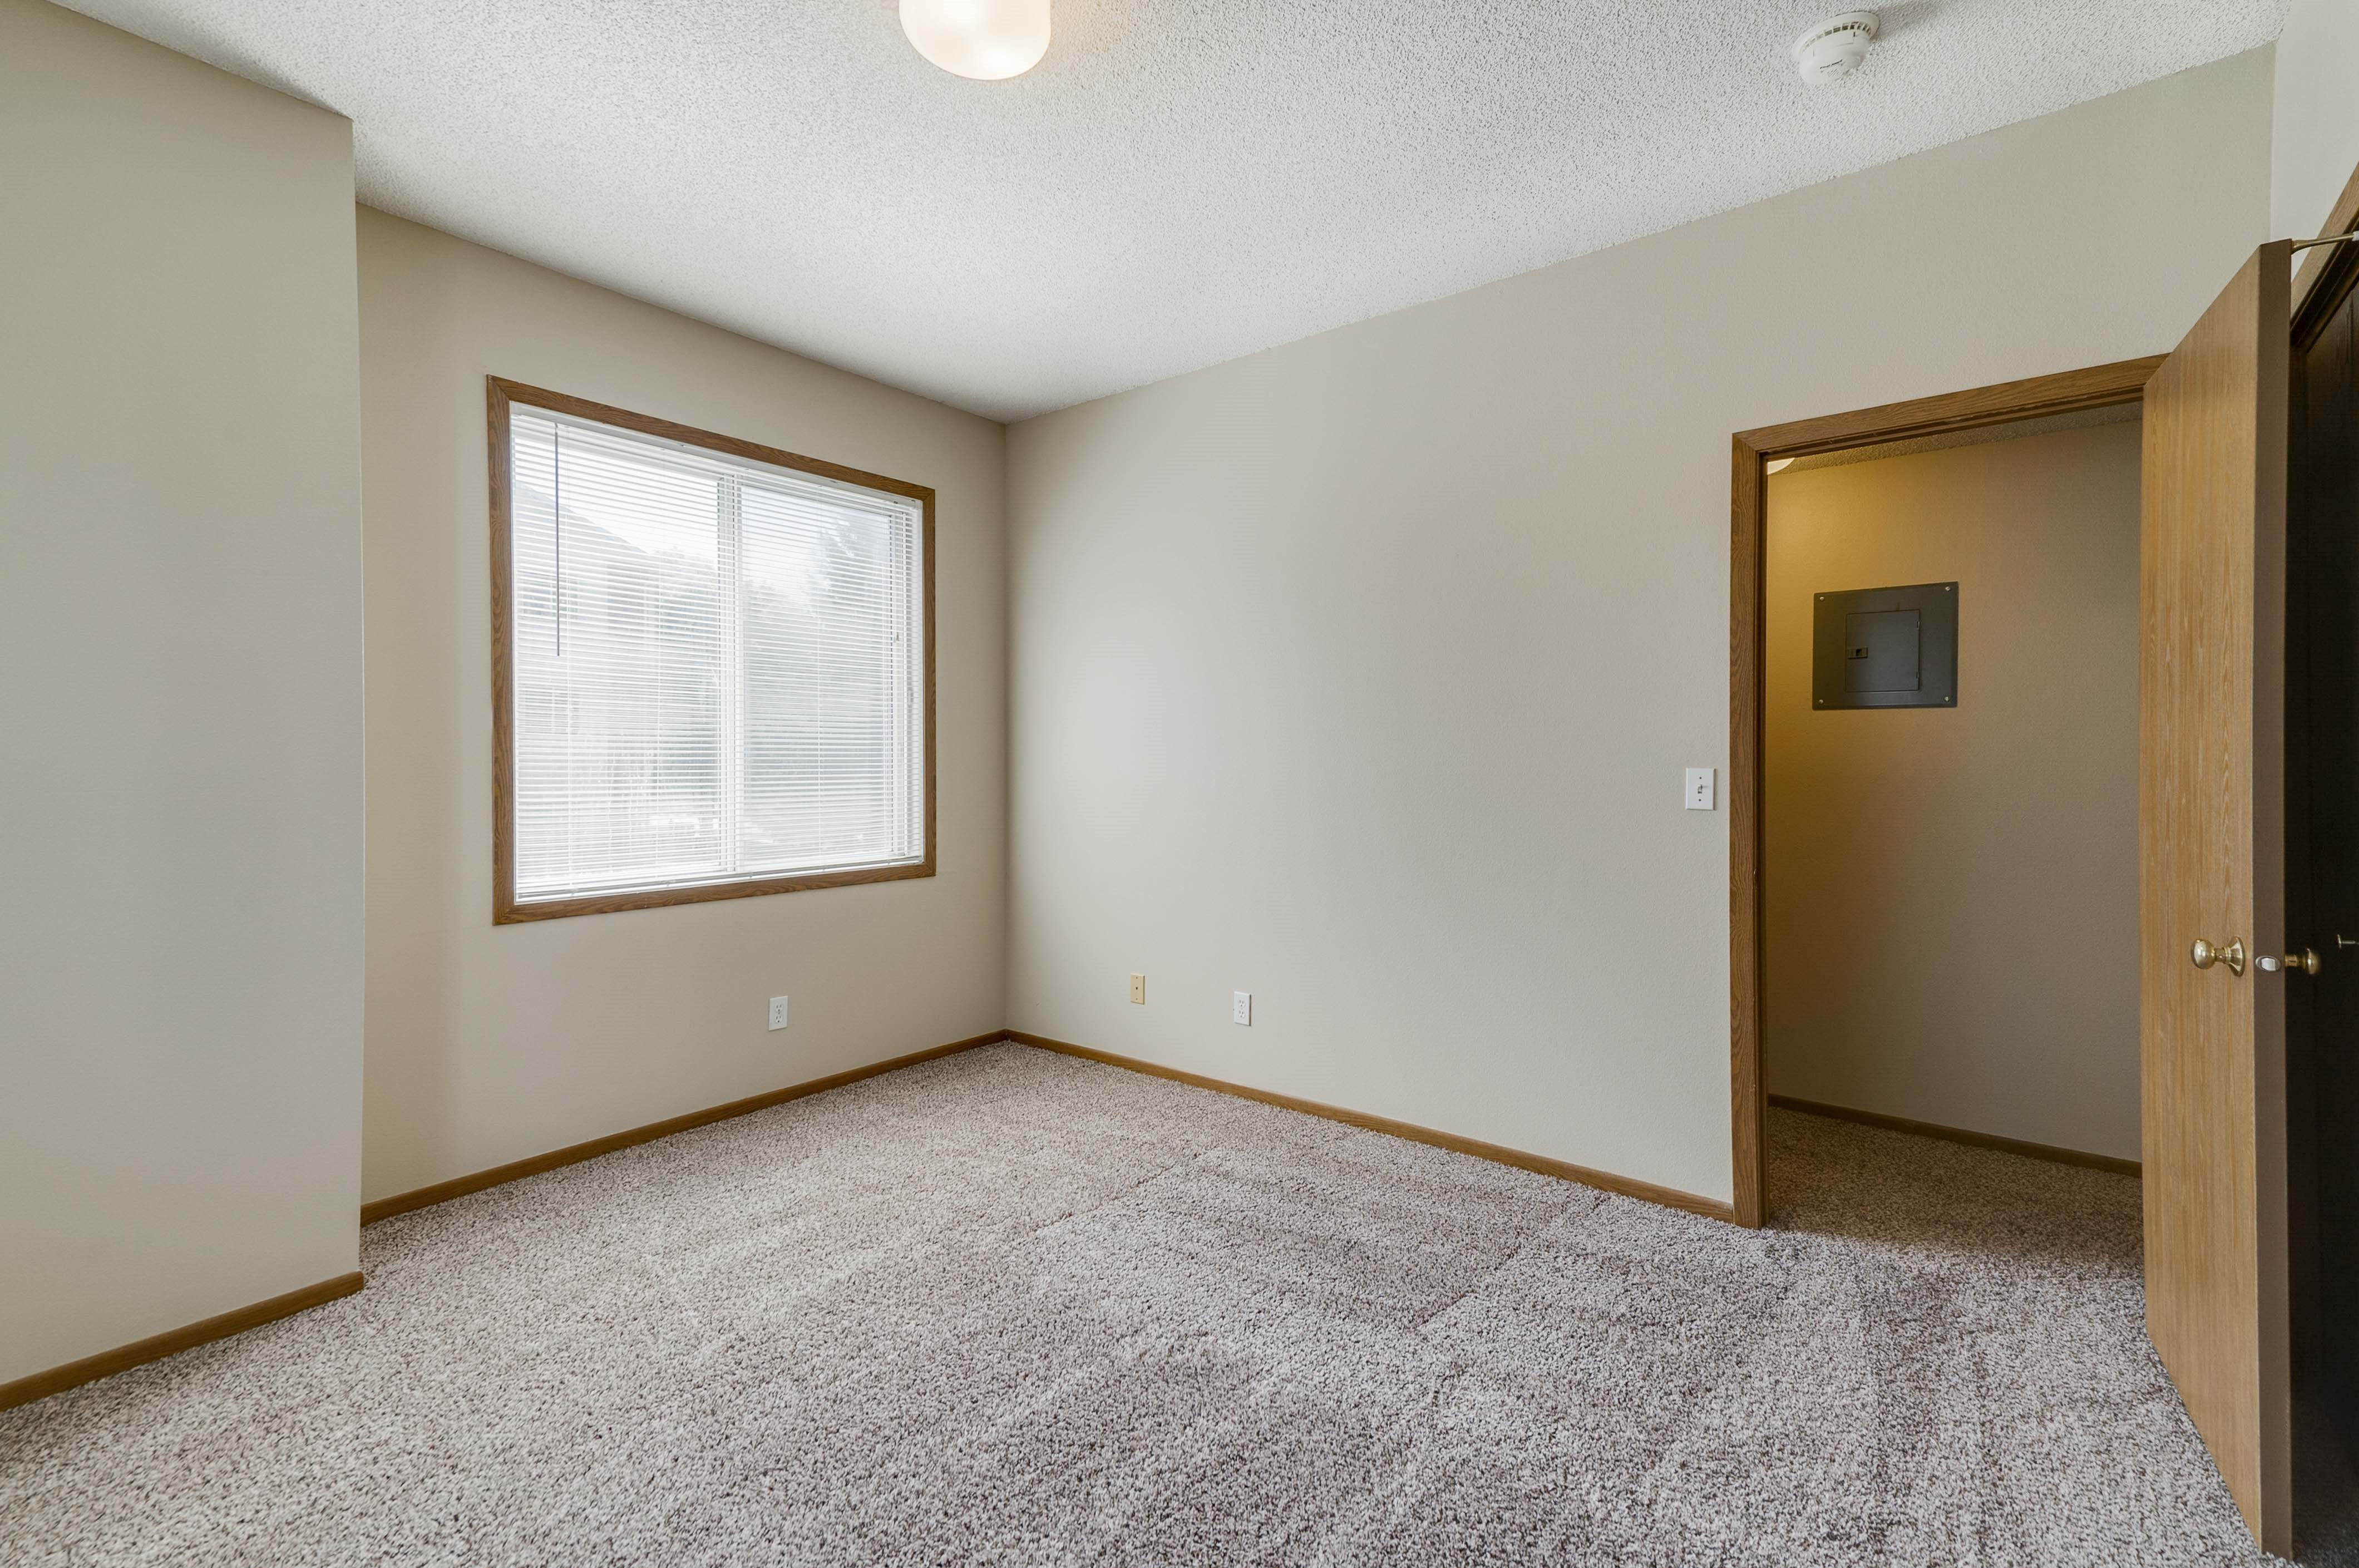 Empty bedroom with two attached closets and one large window